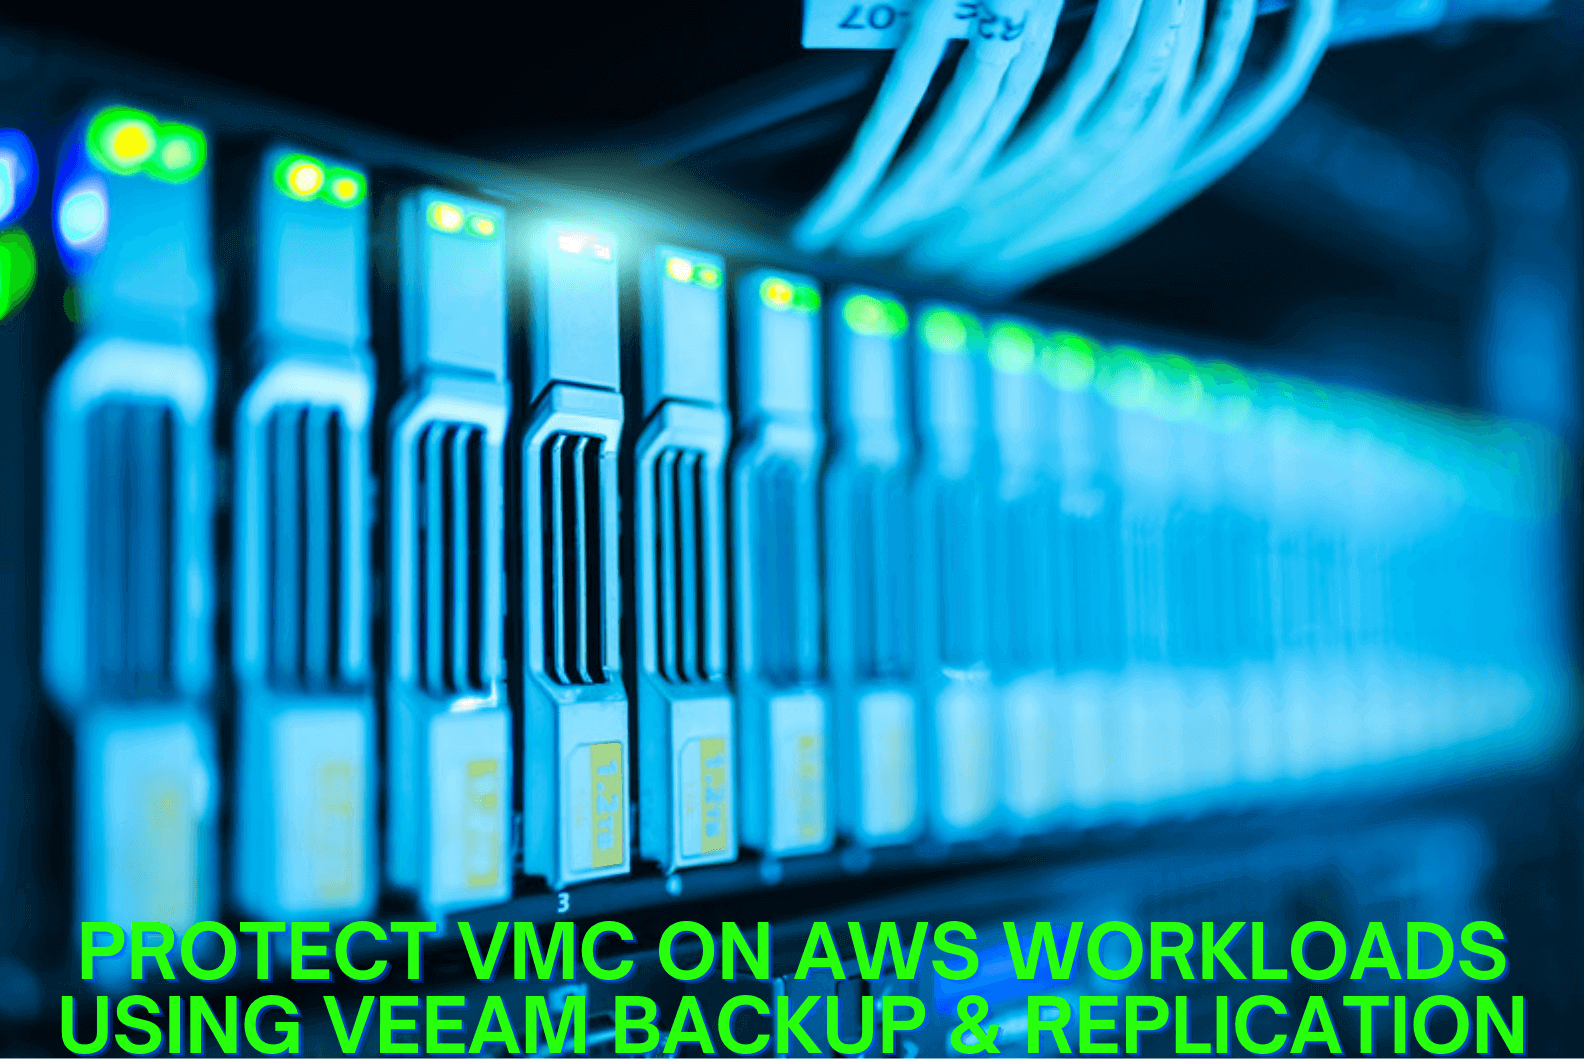 Protect VMC ON AWS Workloads Using Veeam Backup & Replication